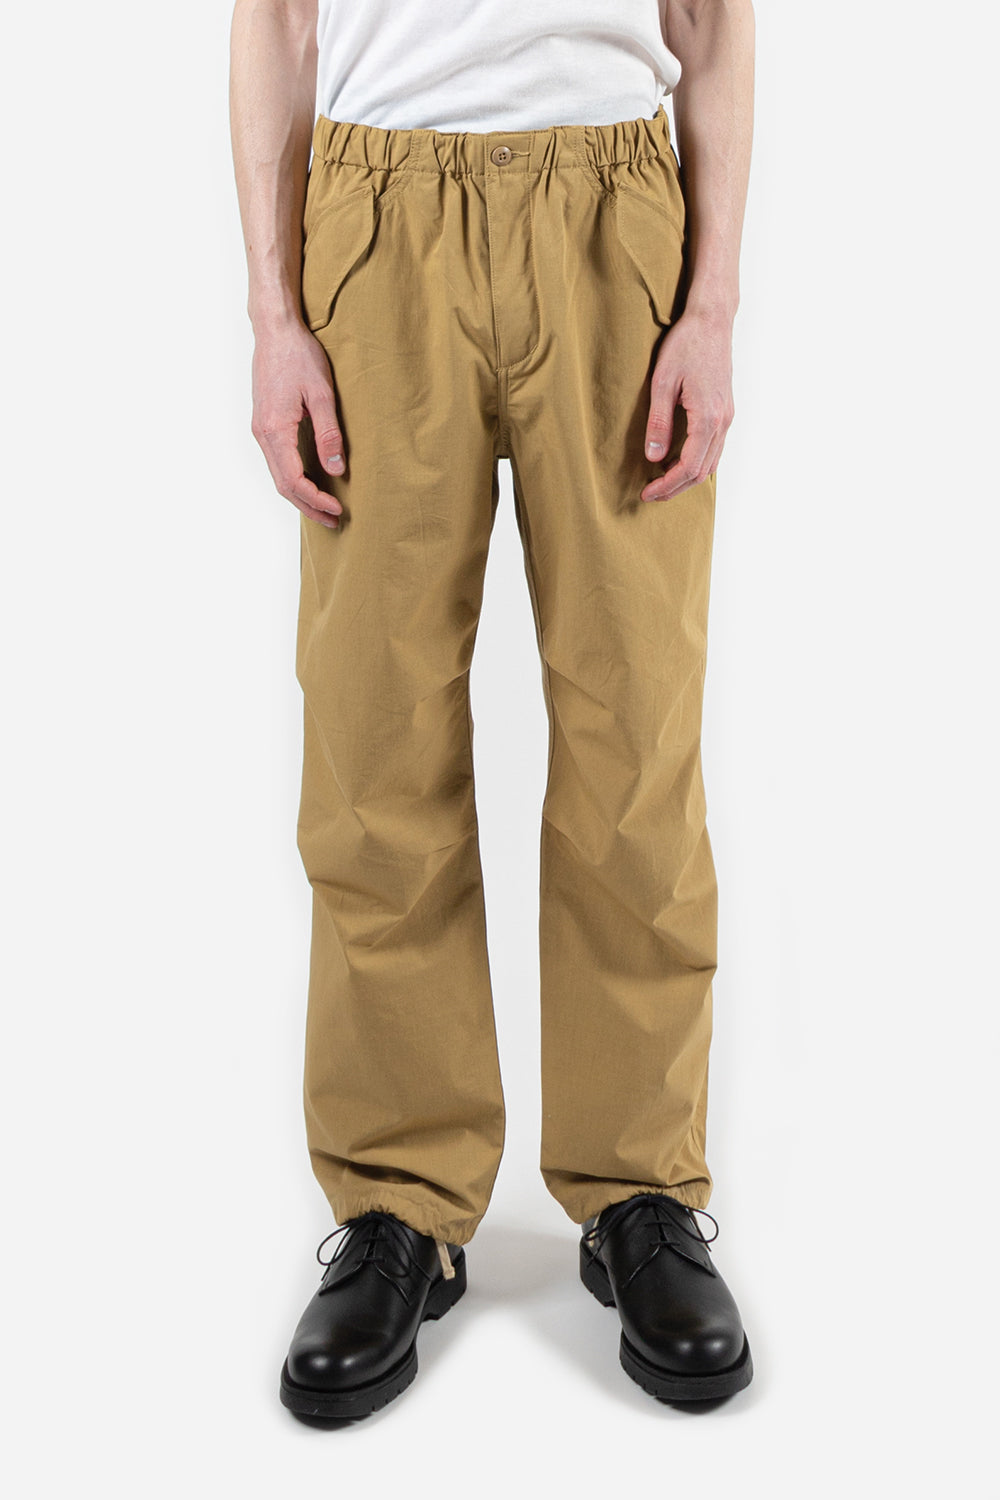 goldwin-wide-easy-wind-pants-beige